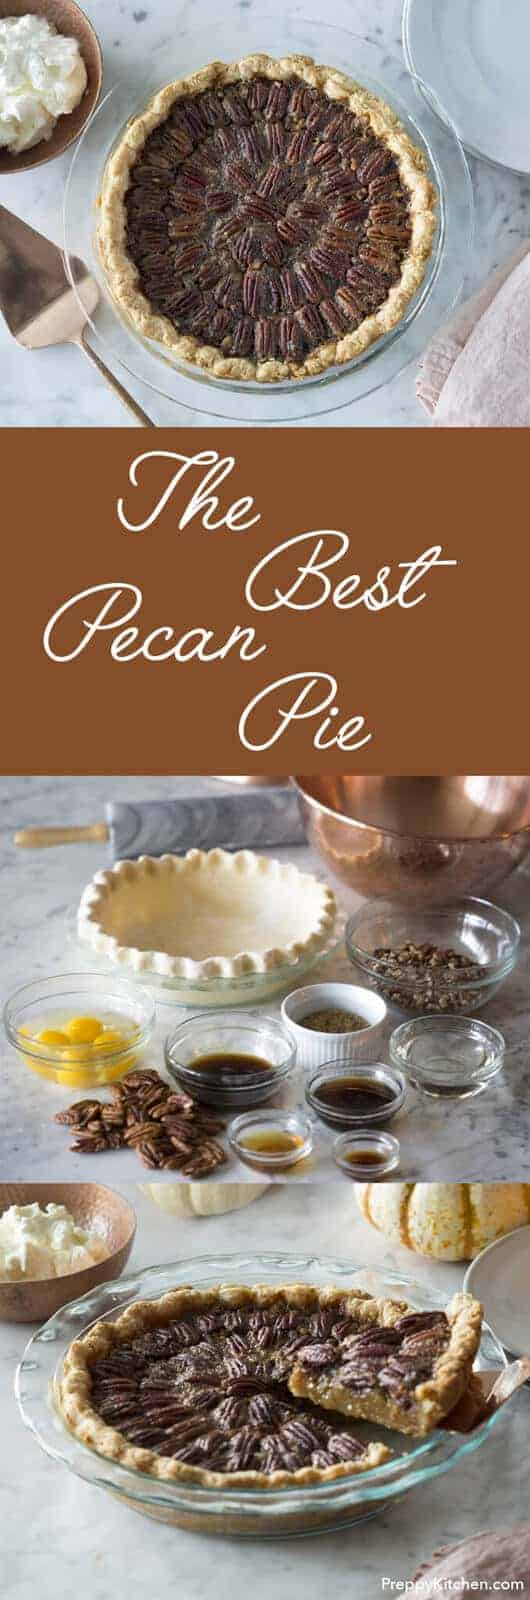 A flakey butter crust, pecans, maple syrup, honey, brown sugar and bourbon combine to make what I consider the perfect pecan pie.